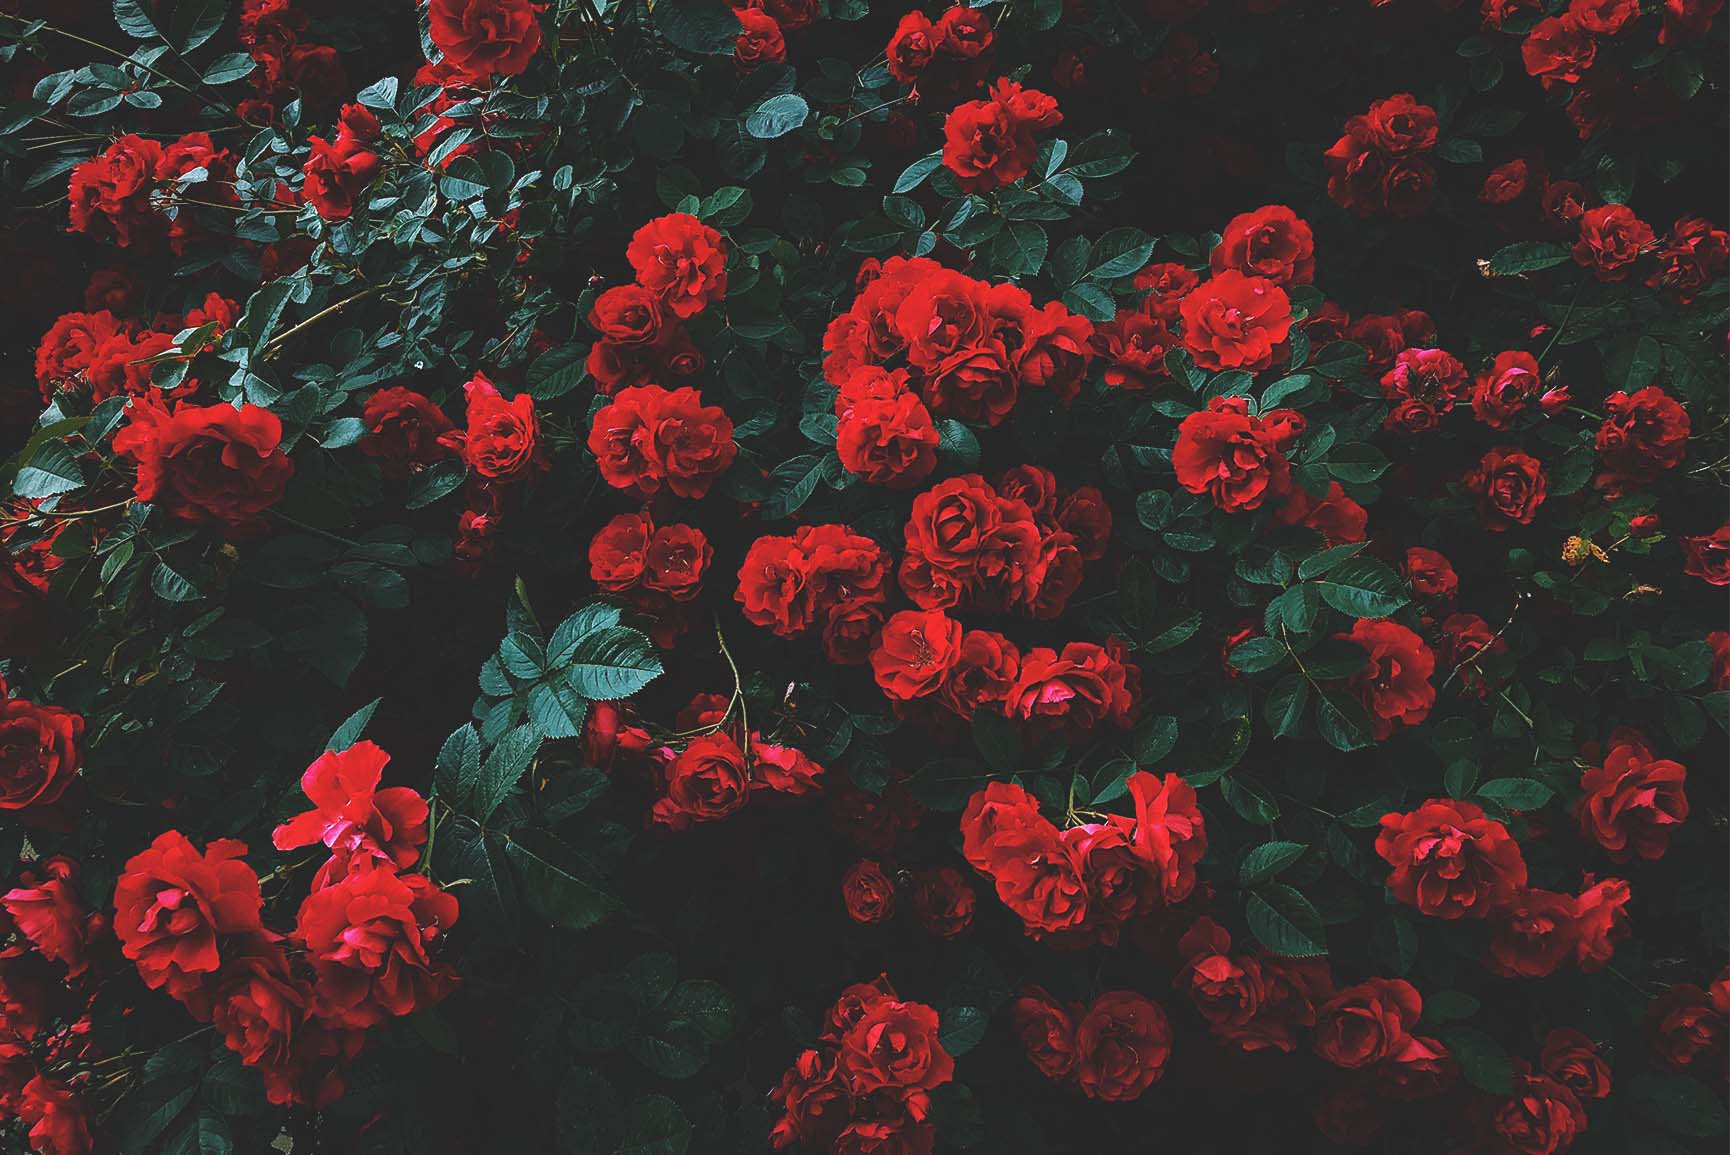 A Dozen Red Roses iPhone Wallpapers for Valentine's Day